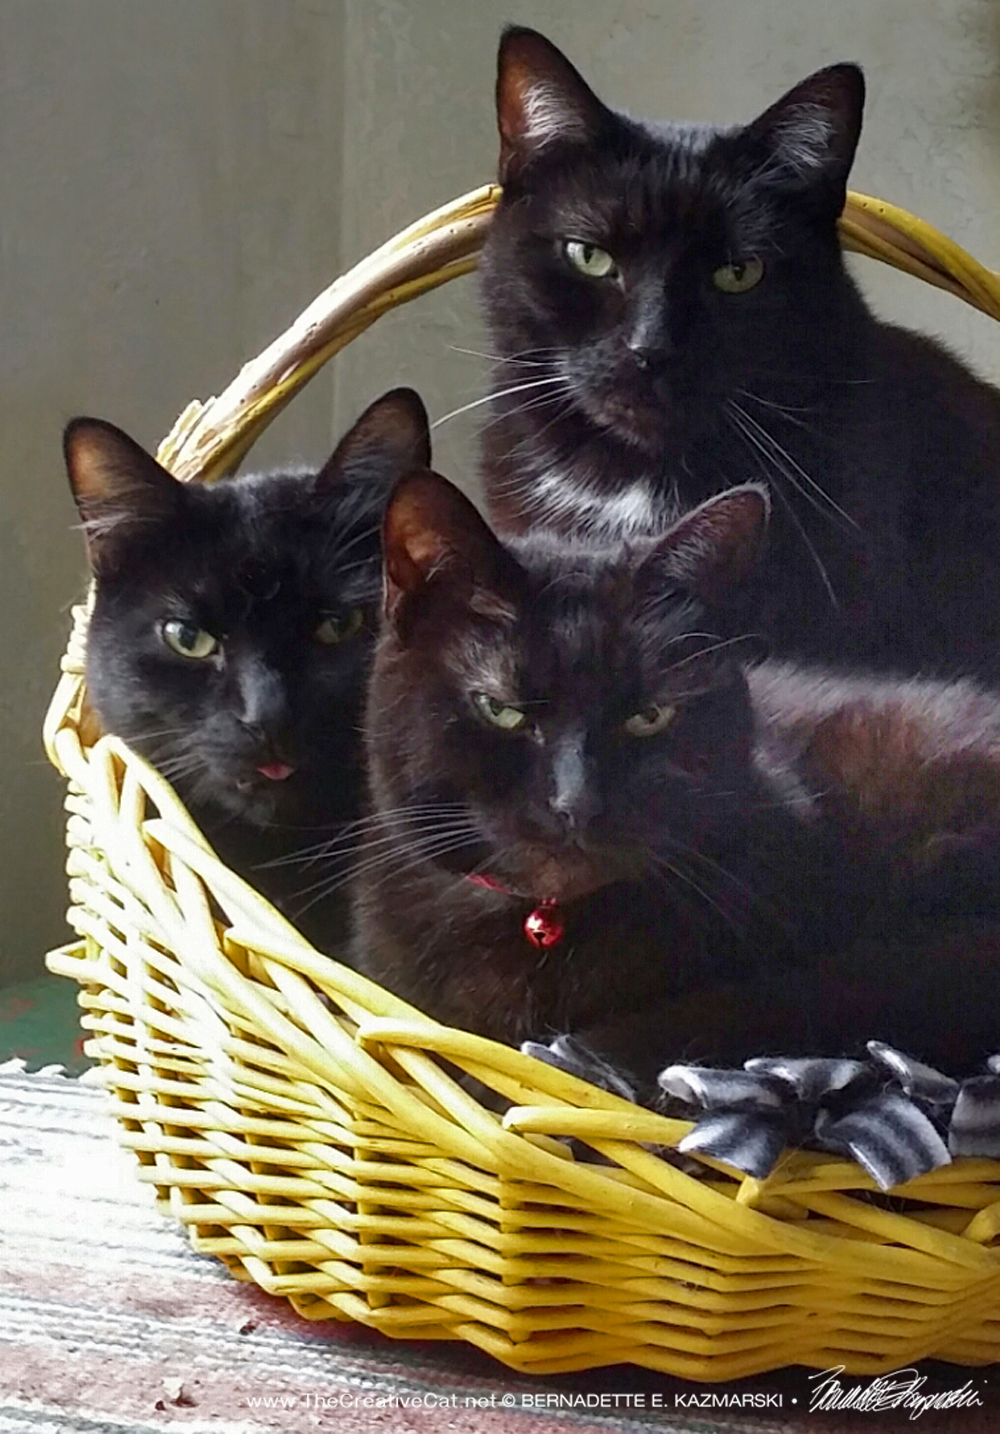 Three Seriously Cute Housepanthers in a Basket